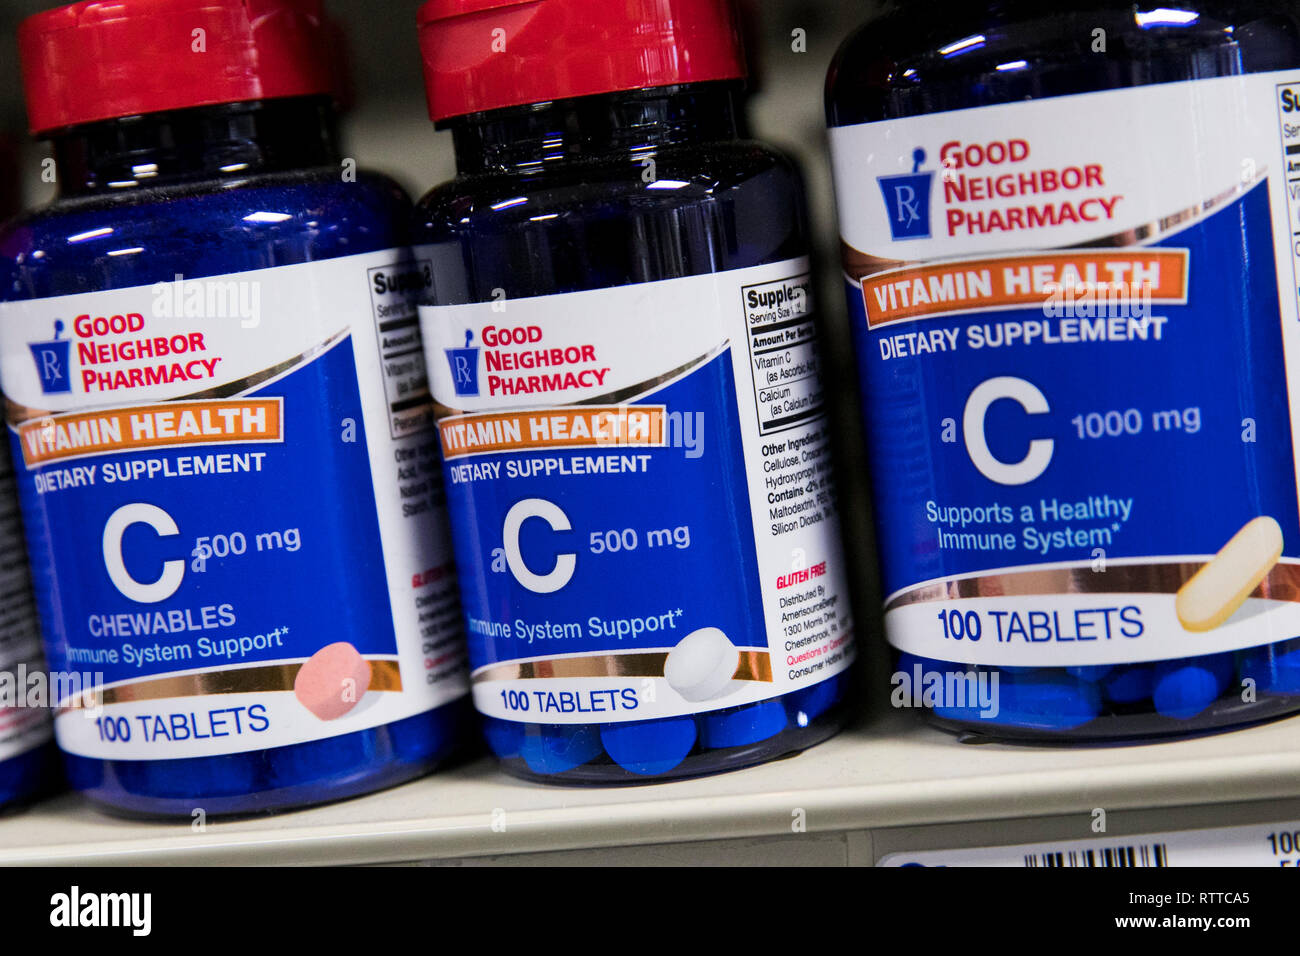 Bottles of Vitamin C supplements photographed in a pharmacy. - Stock Image